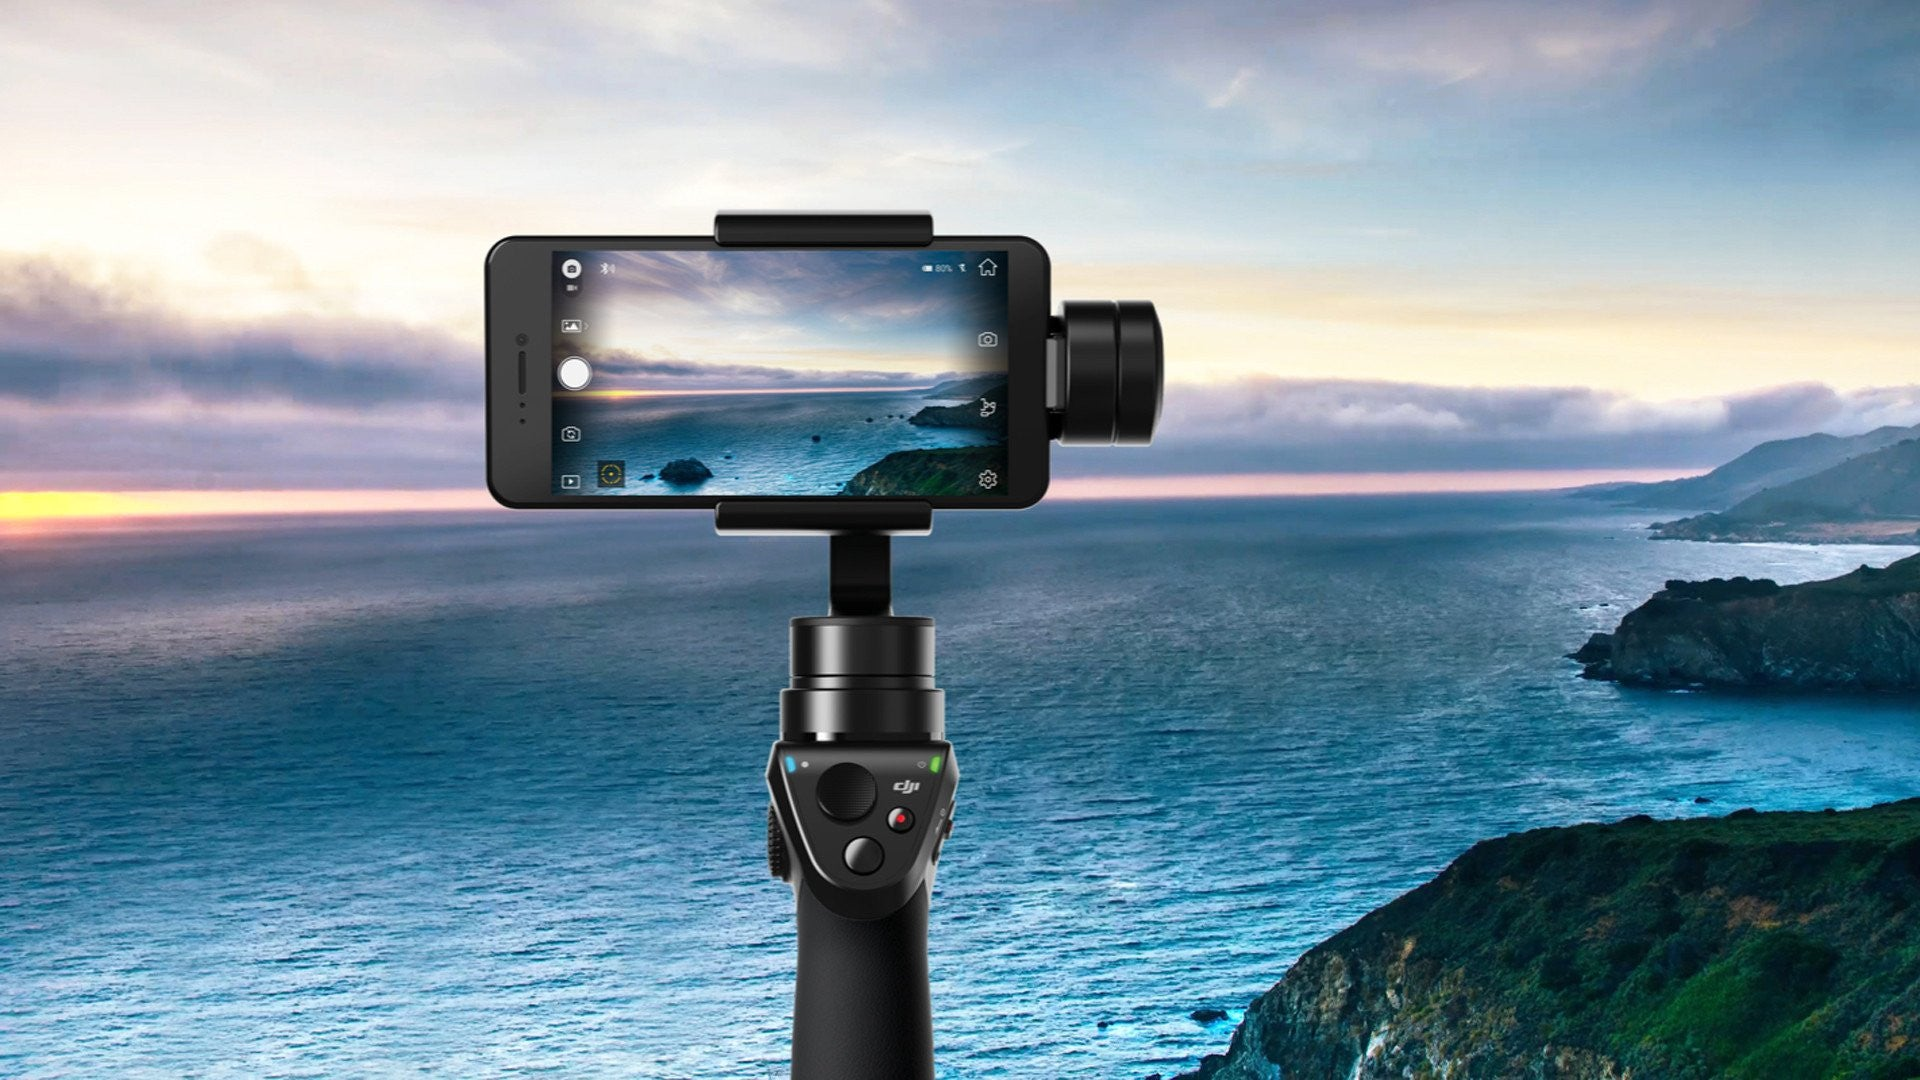 Buy Dji Osmo Mobile Handheld Gimbal For Smartphones Crazy Shot Silver Drones